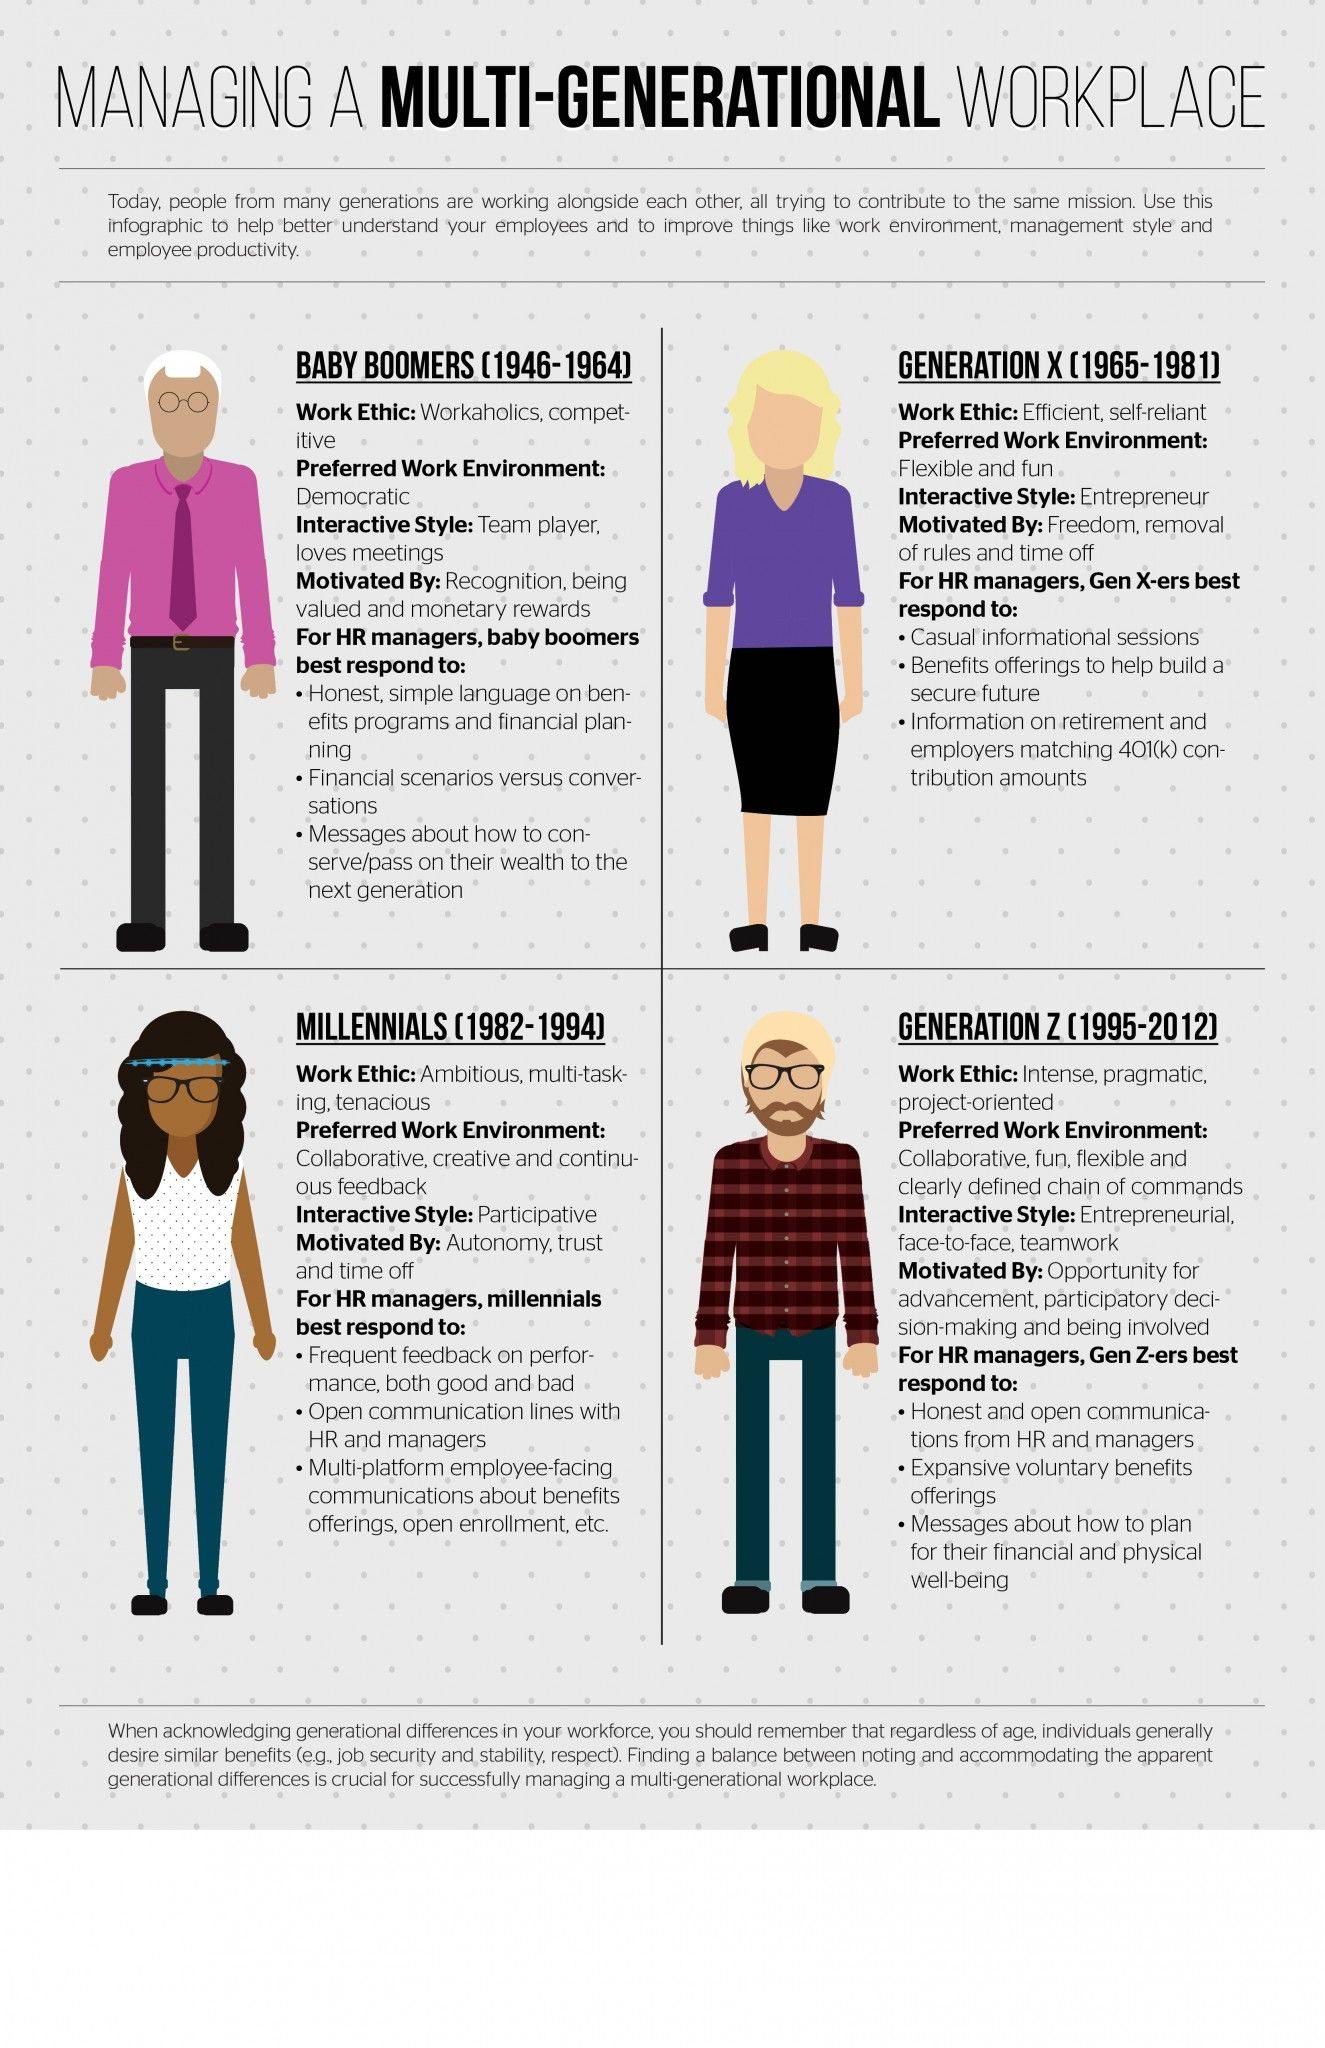 multigenerational workplace differences